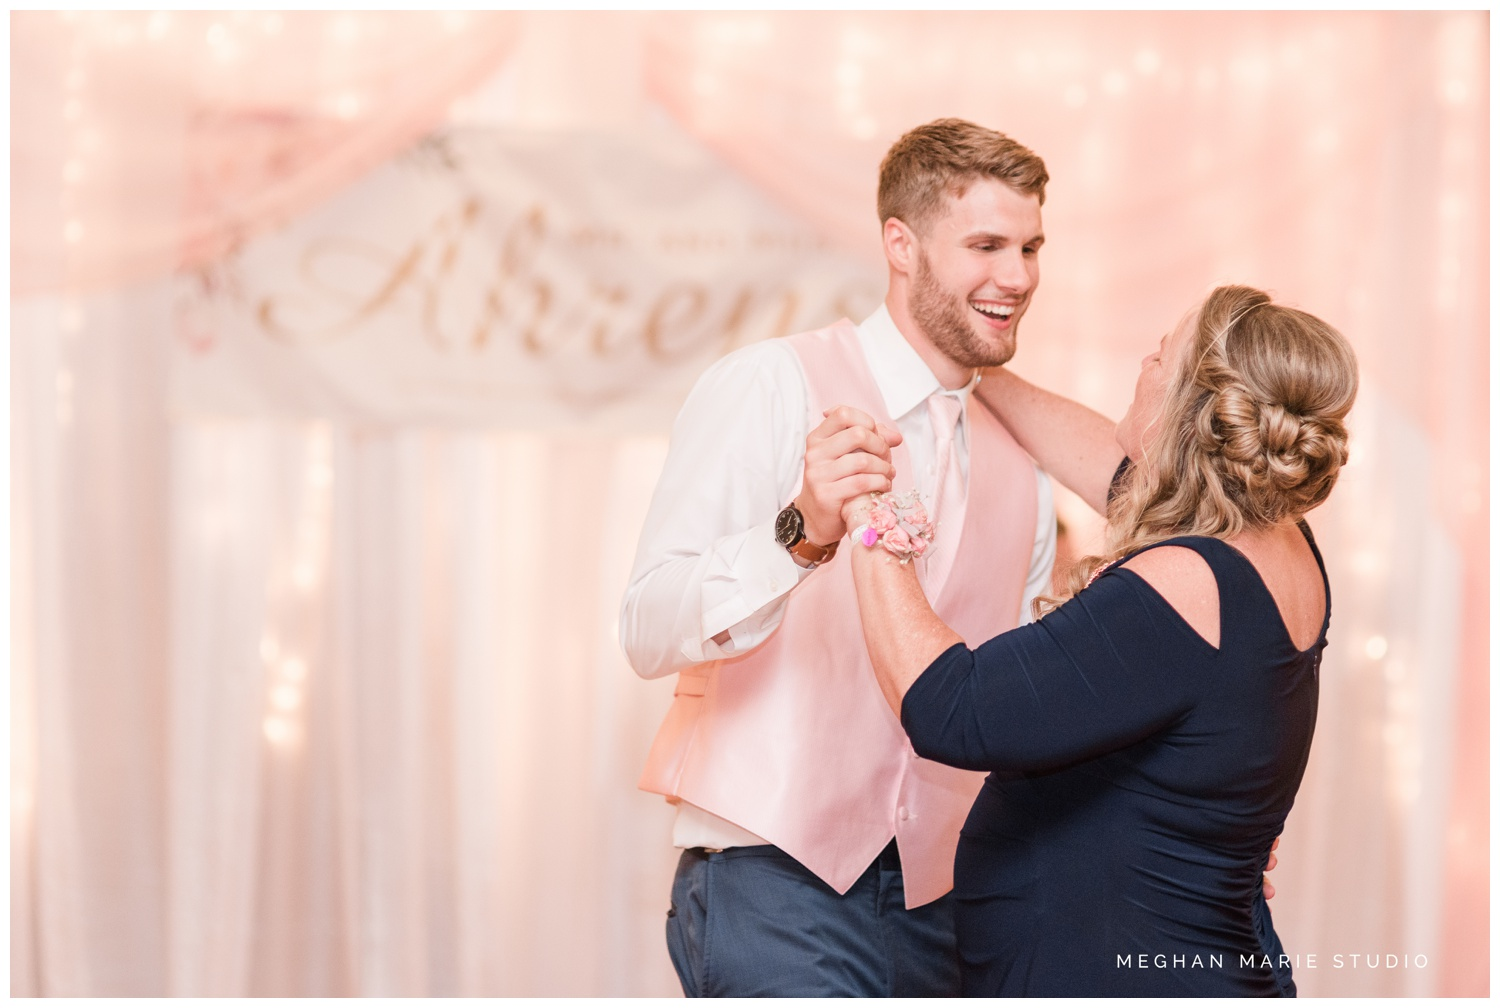 meghan marie studio ohio wedding kyle ahrens msu michigan state basketball spartans navy blush rustic barn soft warm bright bubbles catholic church_0402.jpg